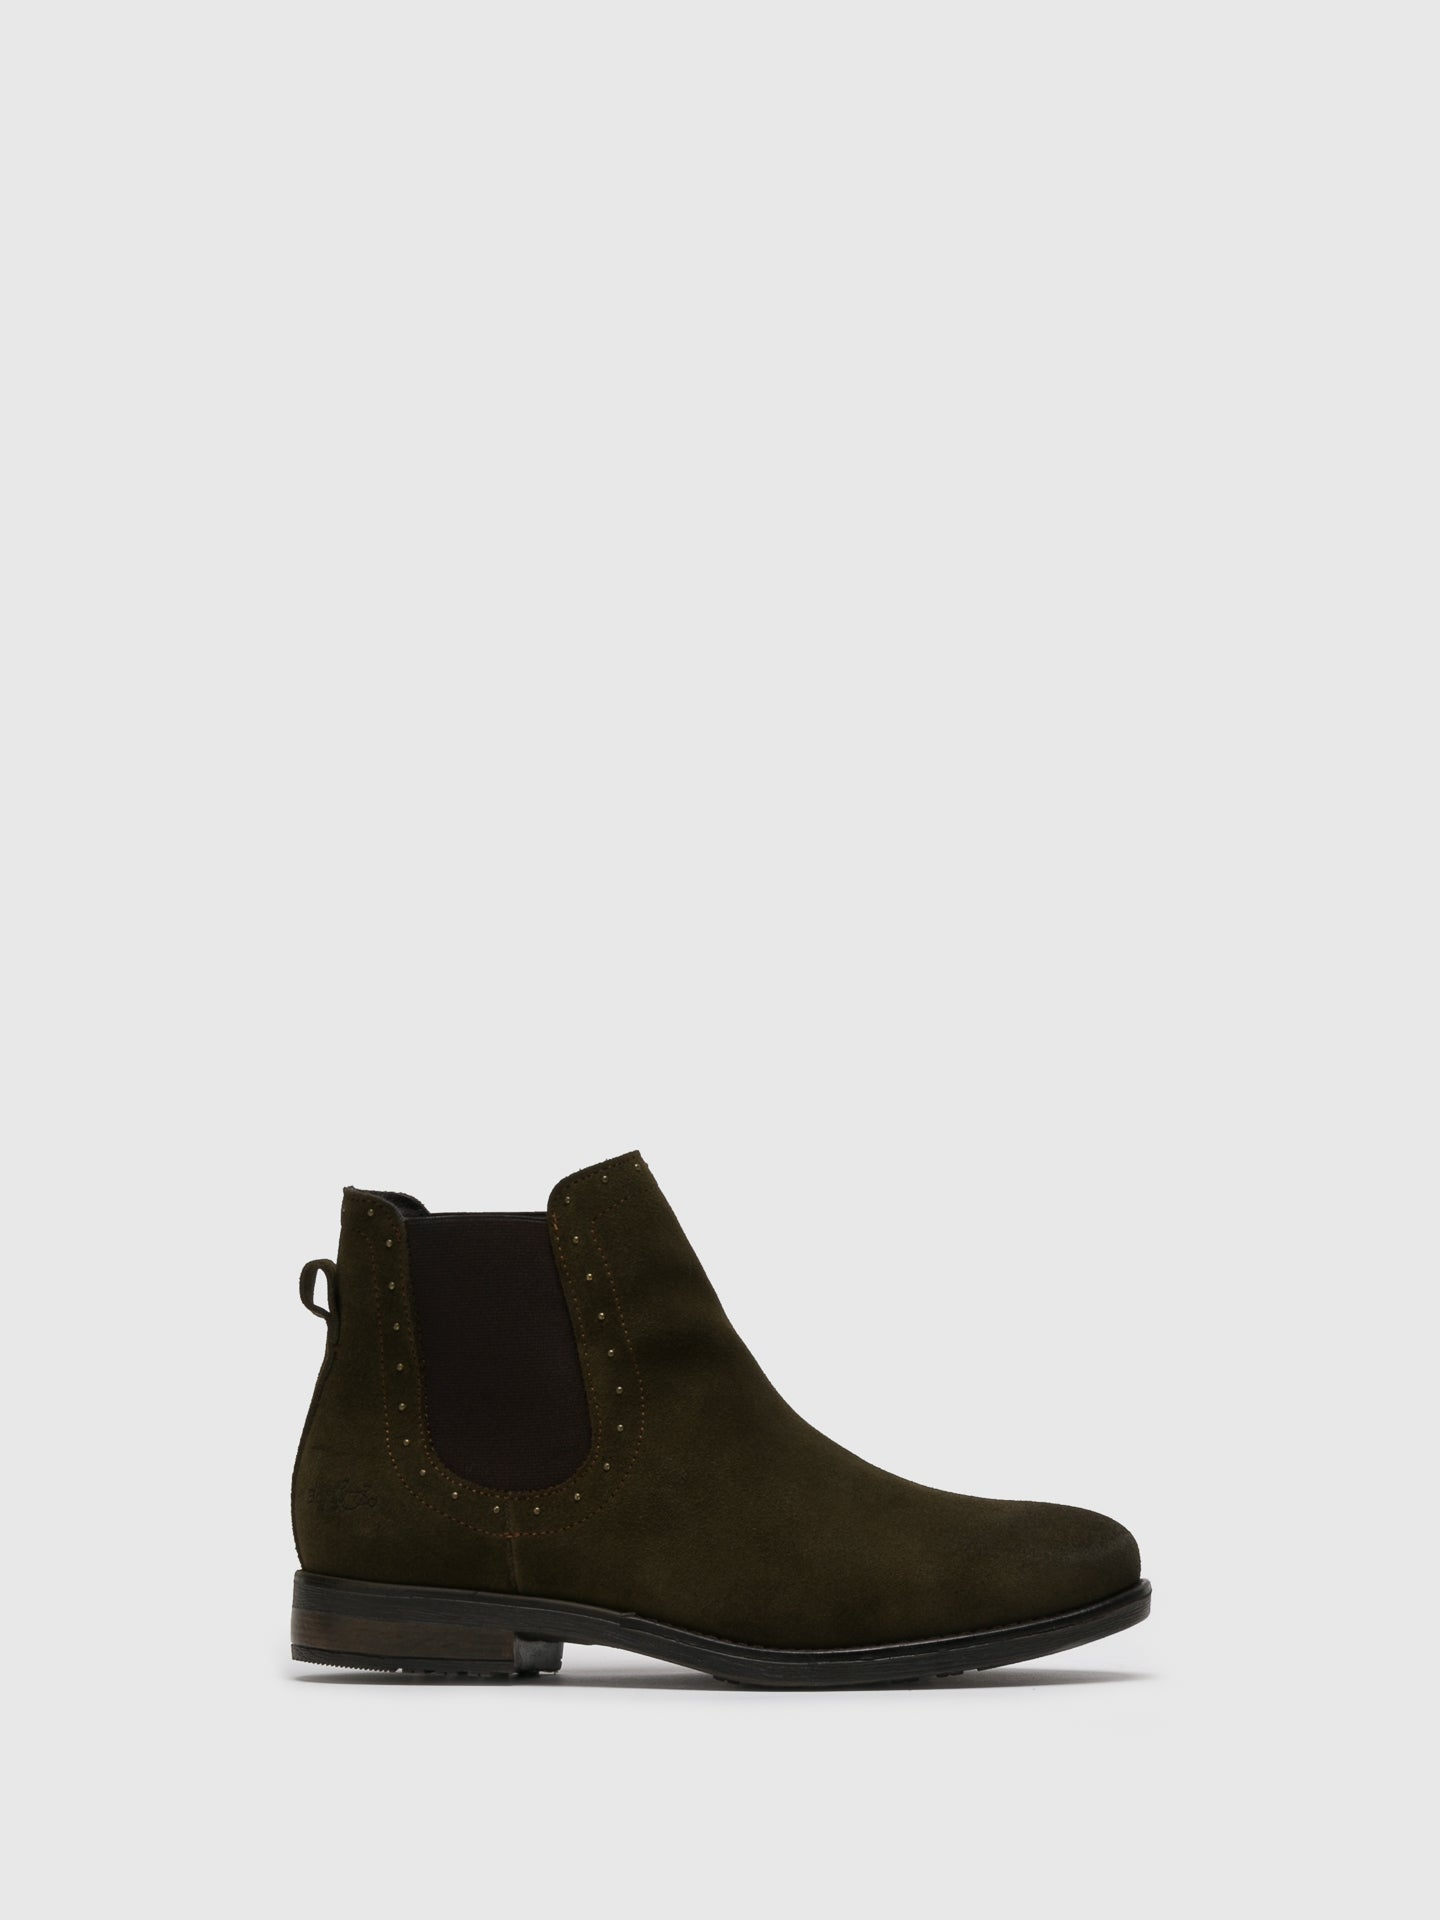 Bos&Co Green Chelsea Ankle Boots